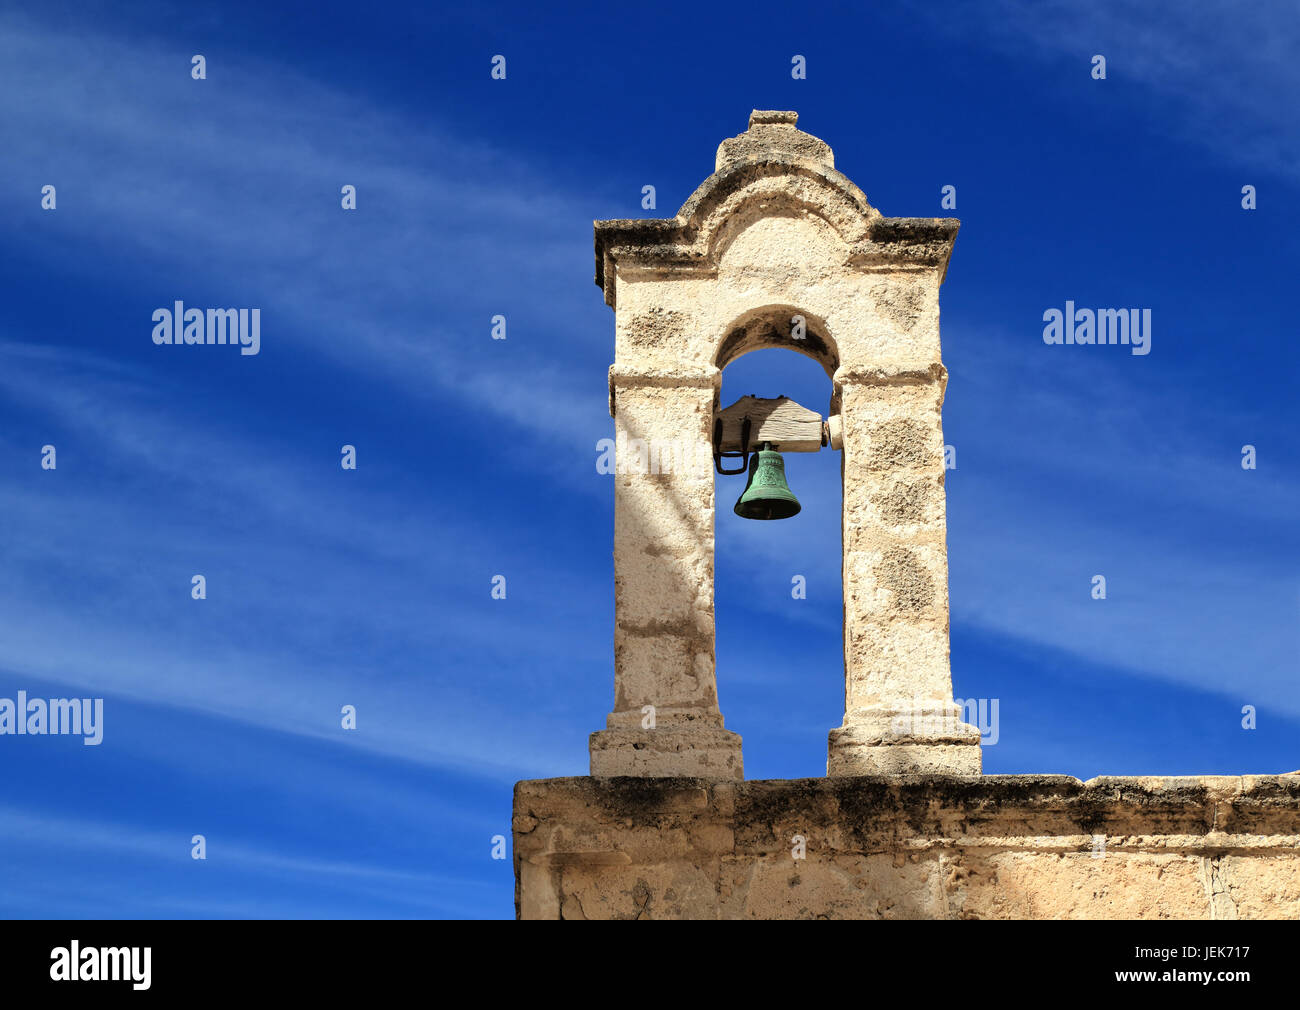 Church bell tower, Polignano a Mare, Italy - Stock Image